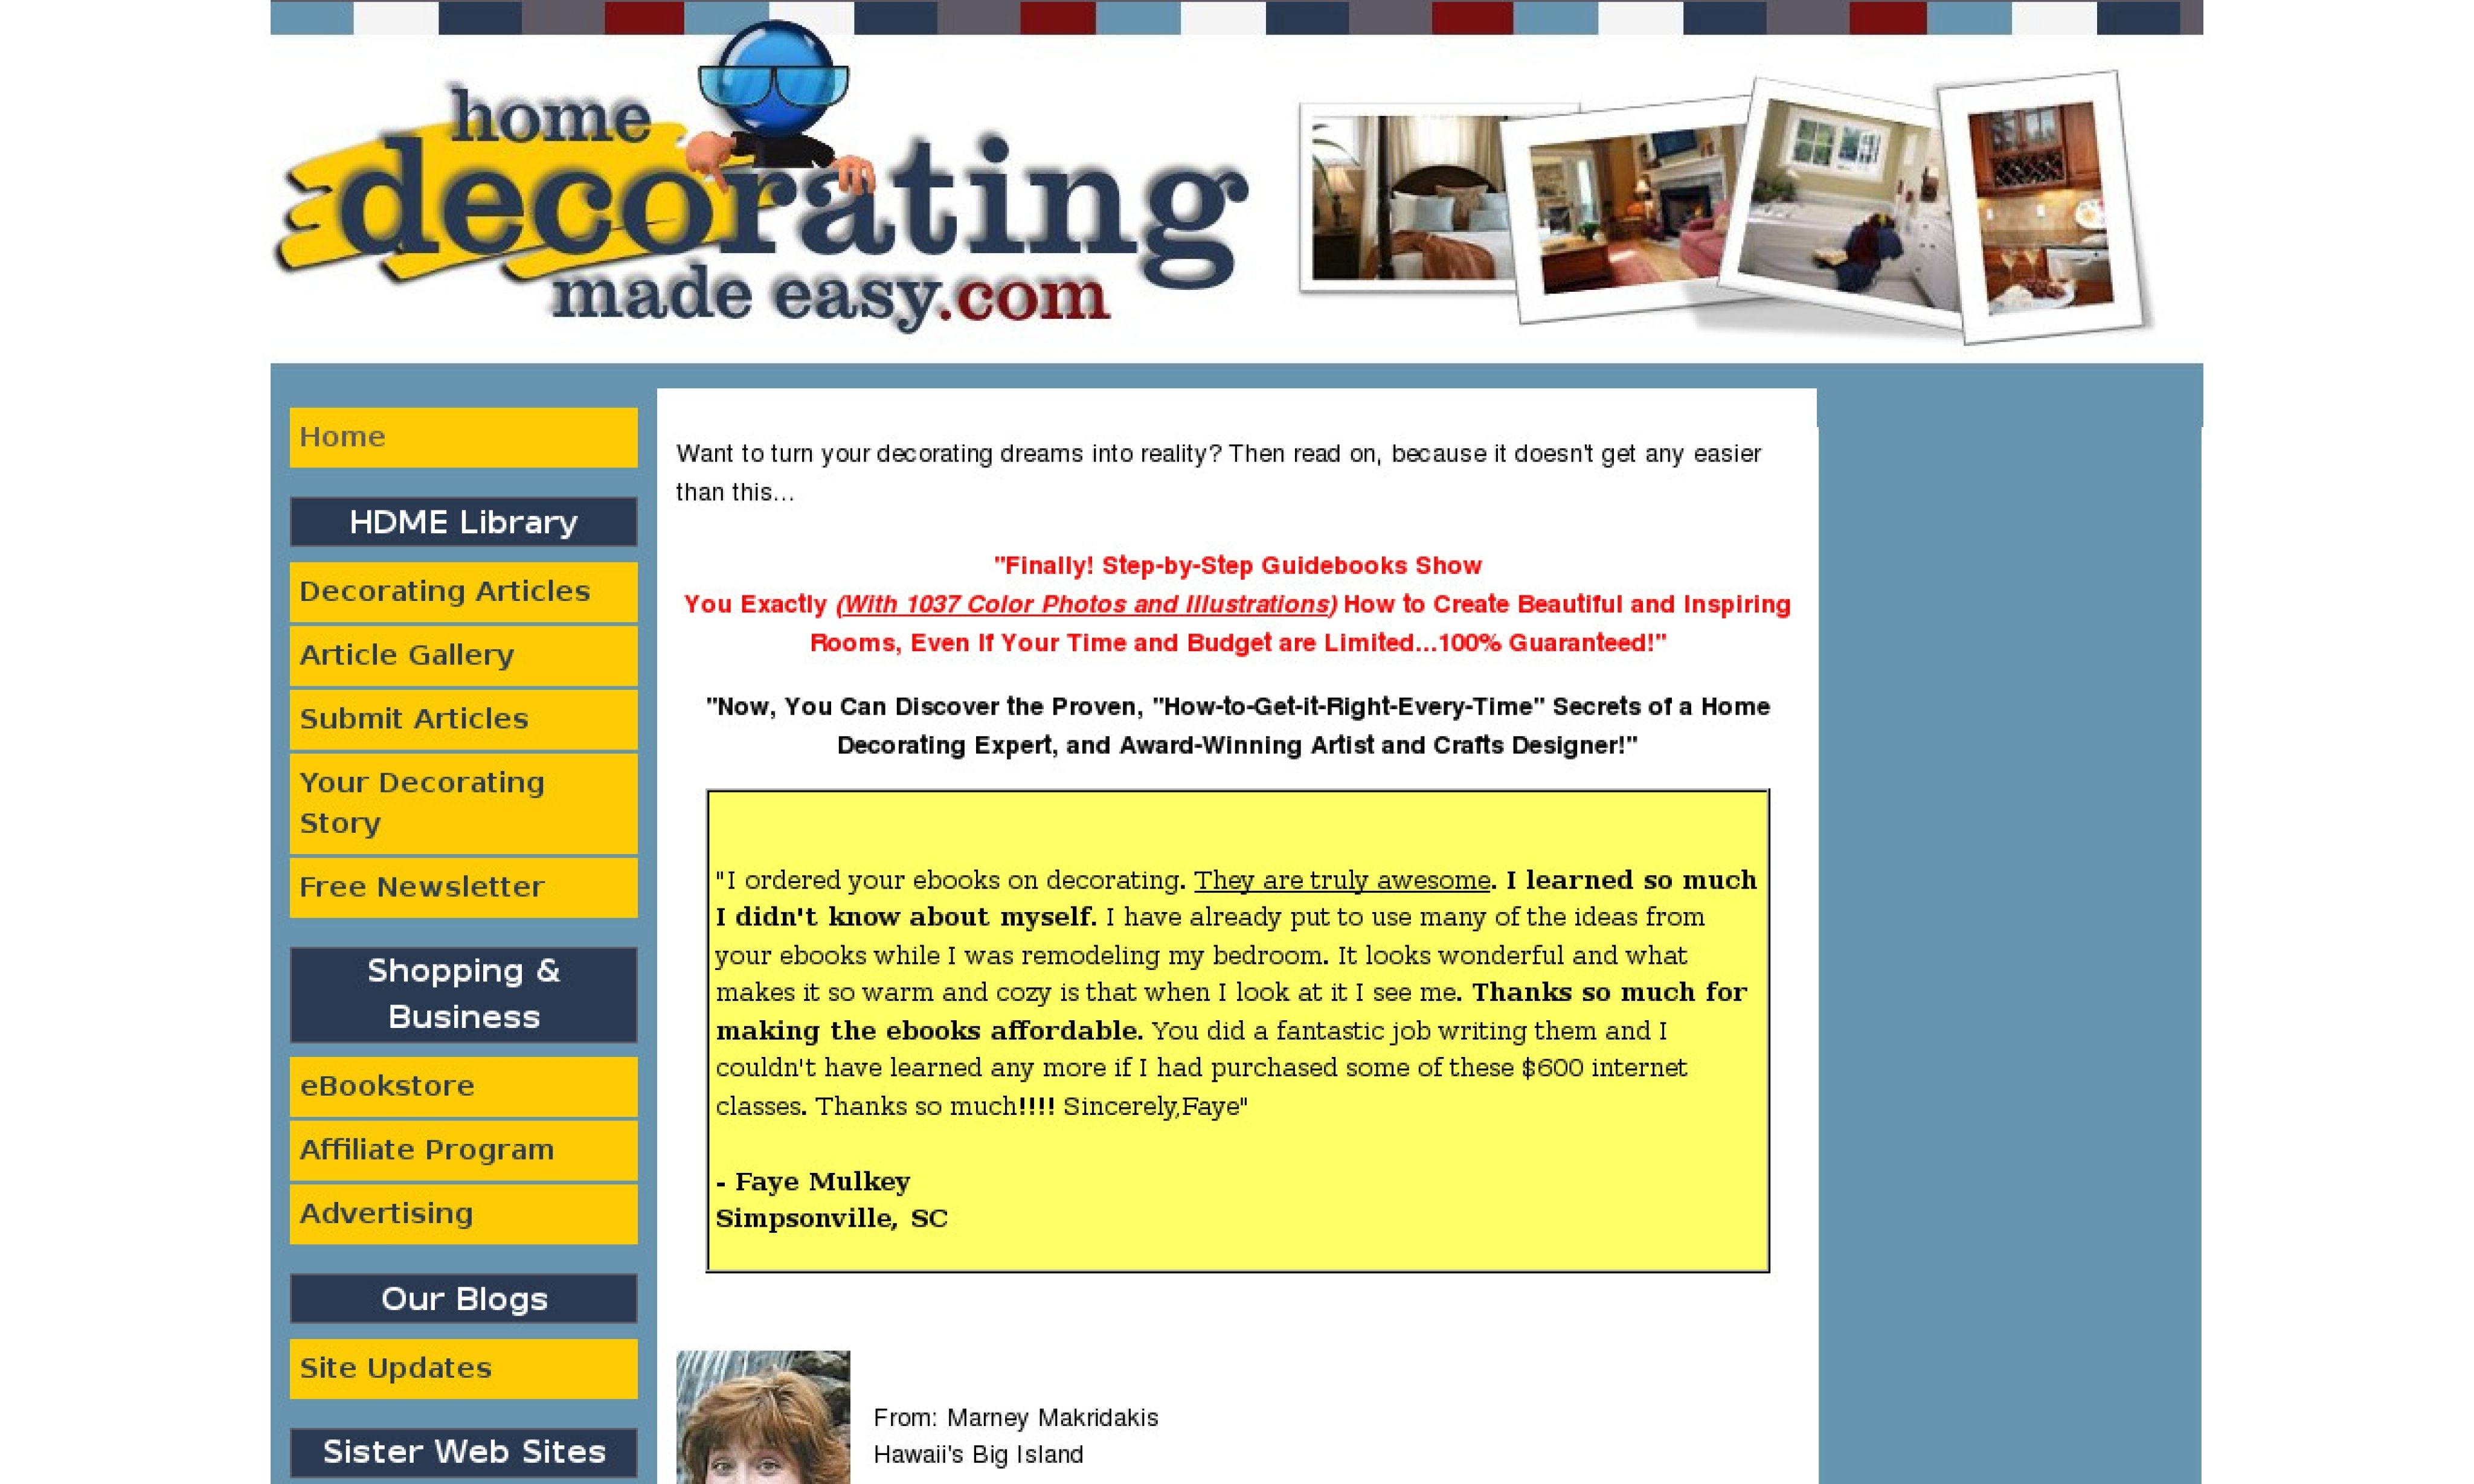 Home Decorating Made Easy - favorite interior paint colors Check ...